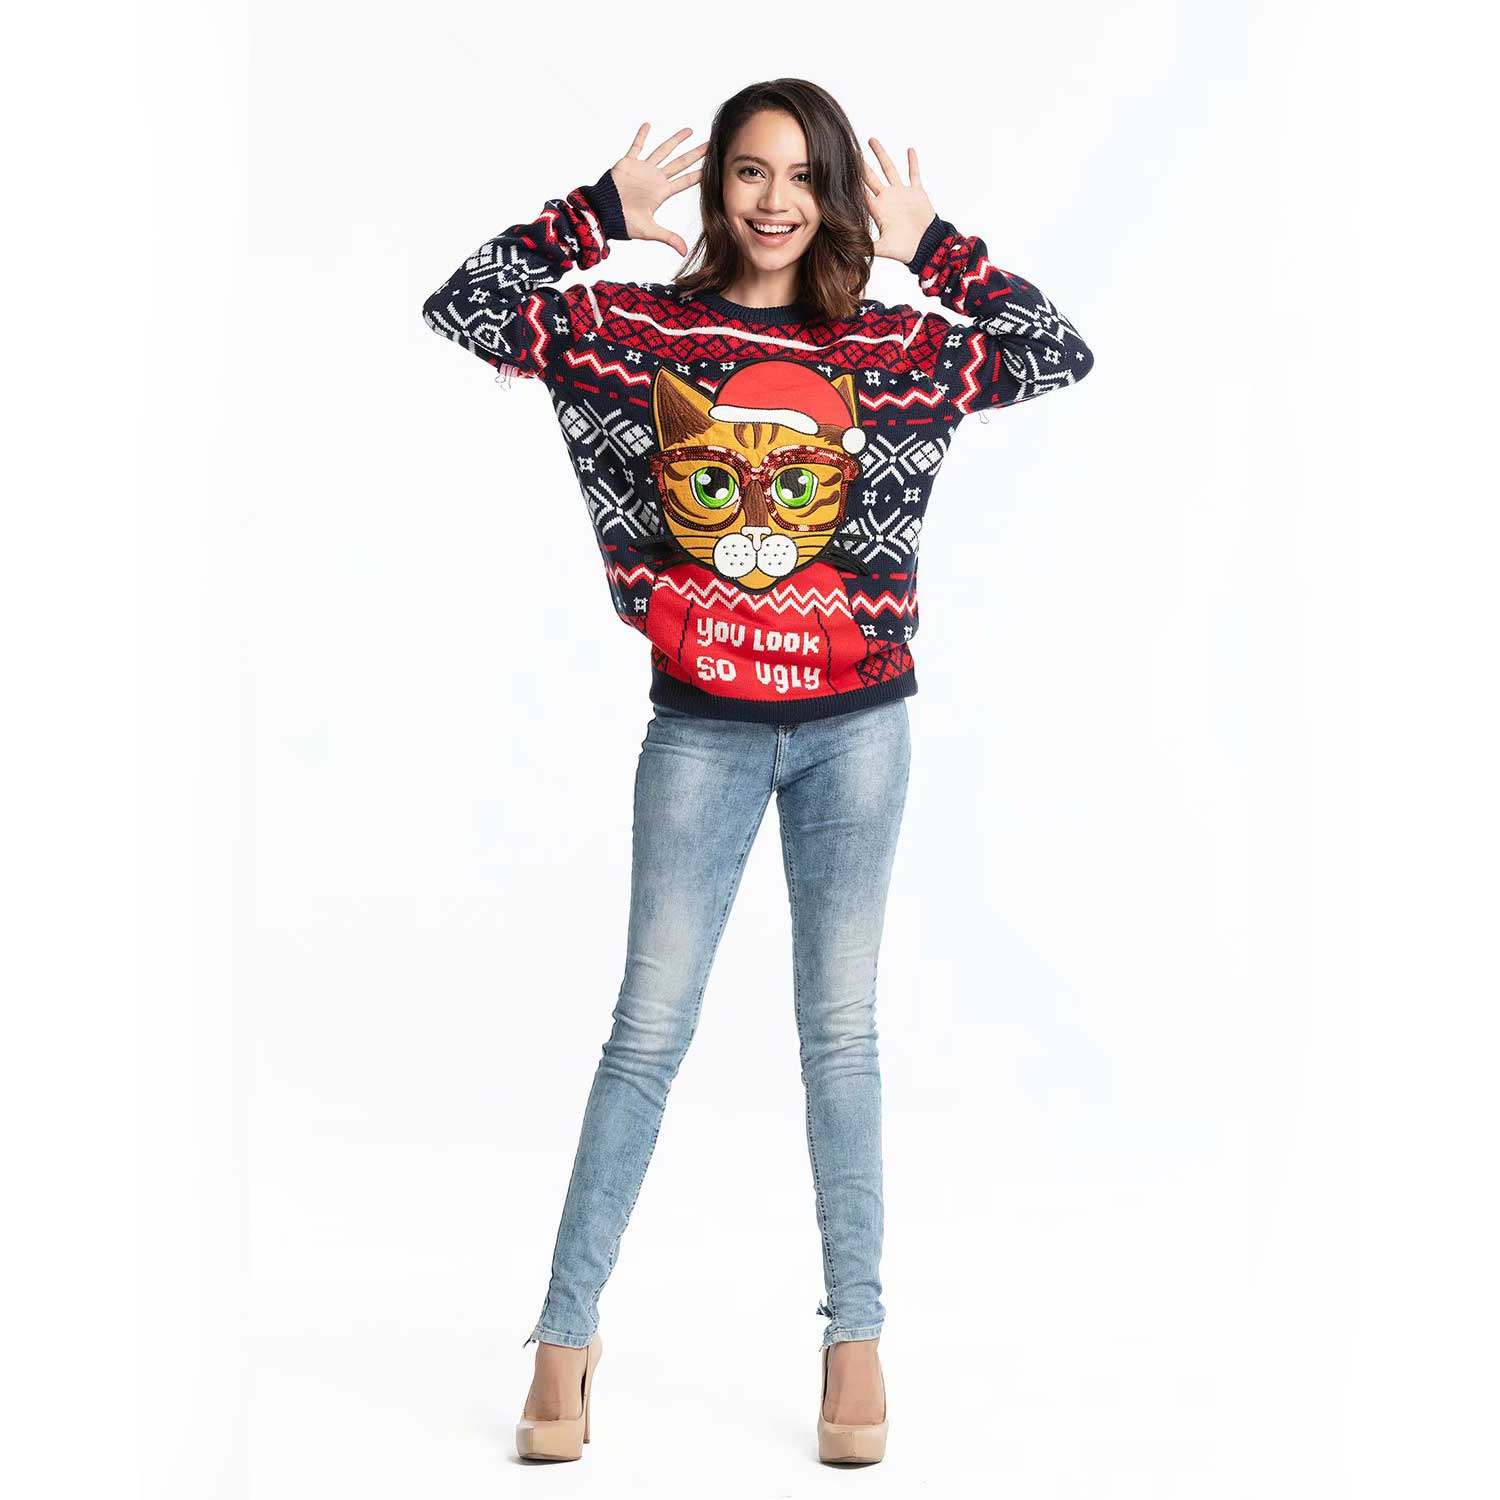 Christmas Sweater Women.Funny Cute Kitty Women S Ugly Christmas Sweater